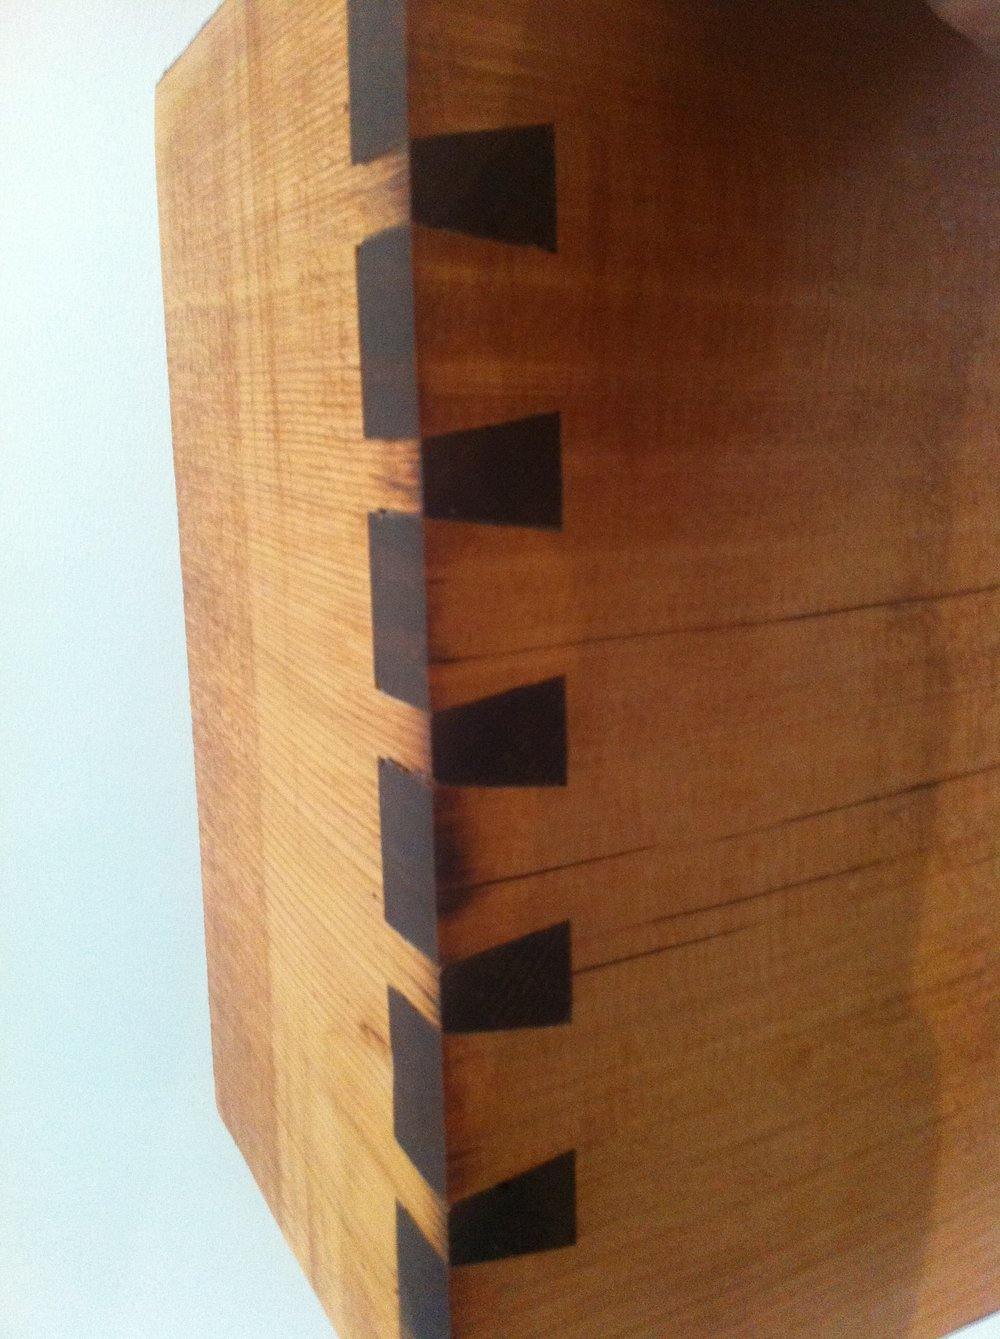 Dovetails!  I can make furniture and stuff now.